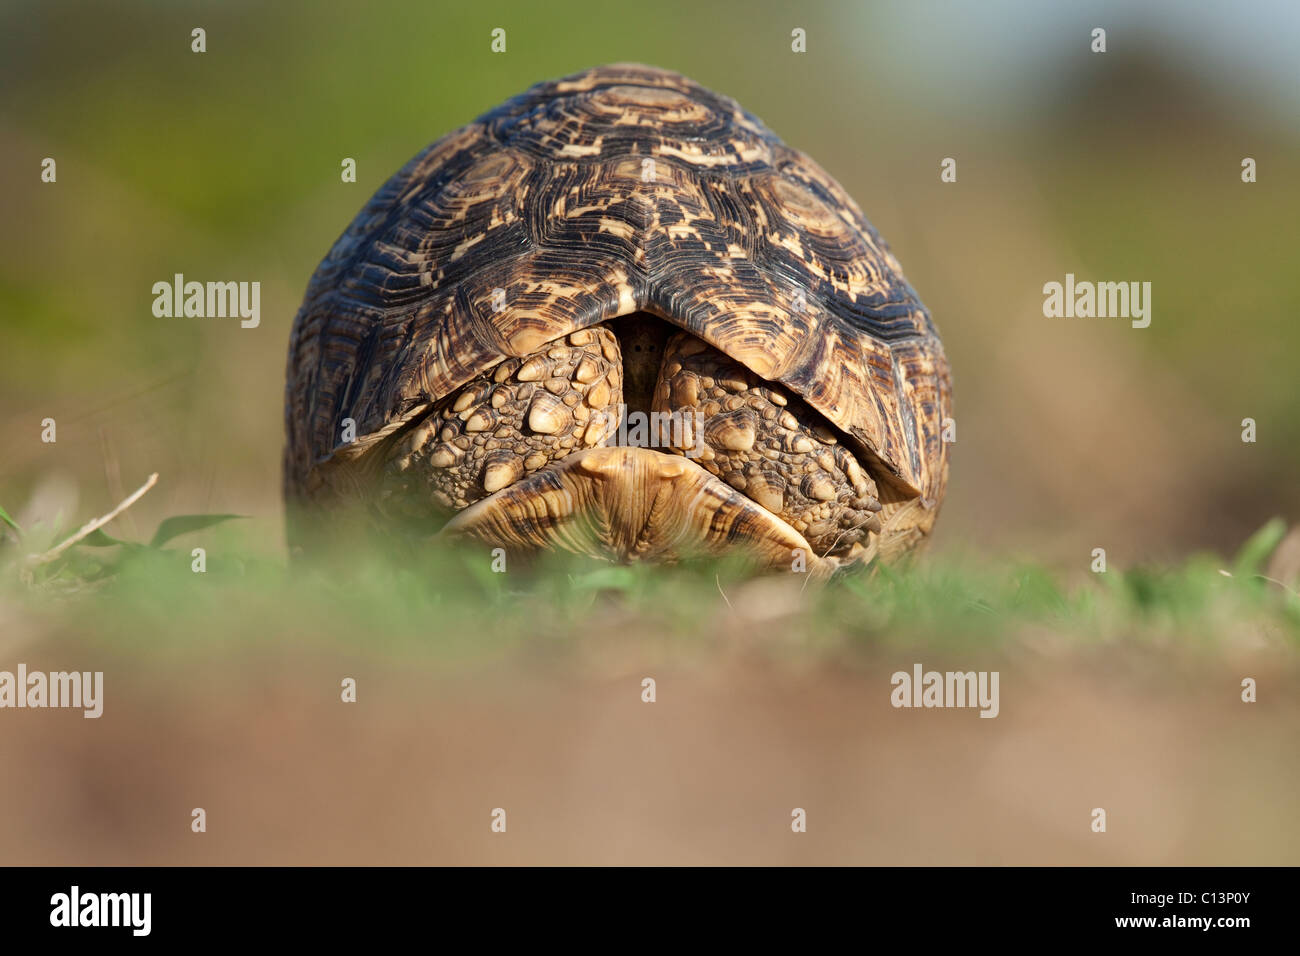 Leopard Tortoise (Stigmochelys Pardalis). With retracted front legs. - Stock Image